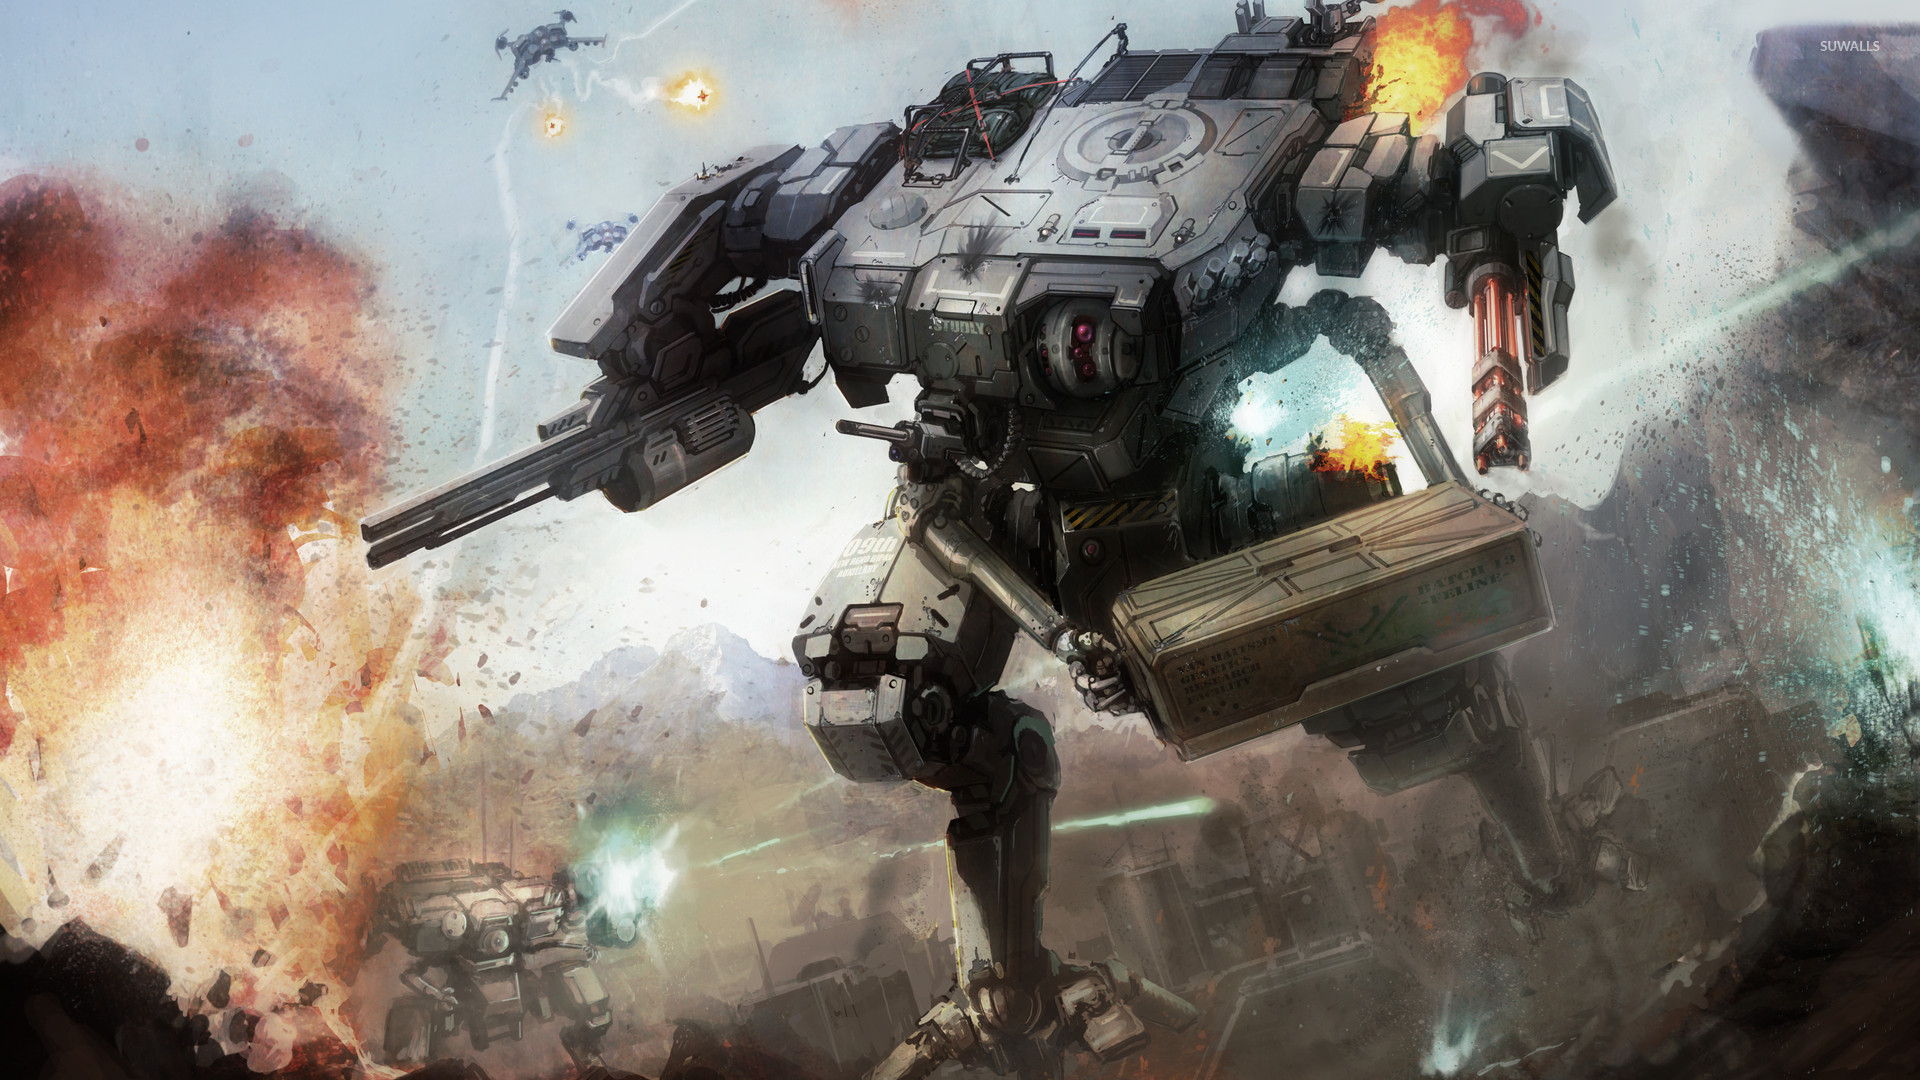 Mechwarrior Battletech Wallpaper 1920x1080 Pictures 1920x1080